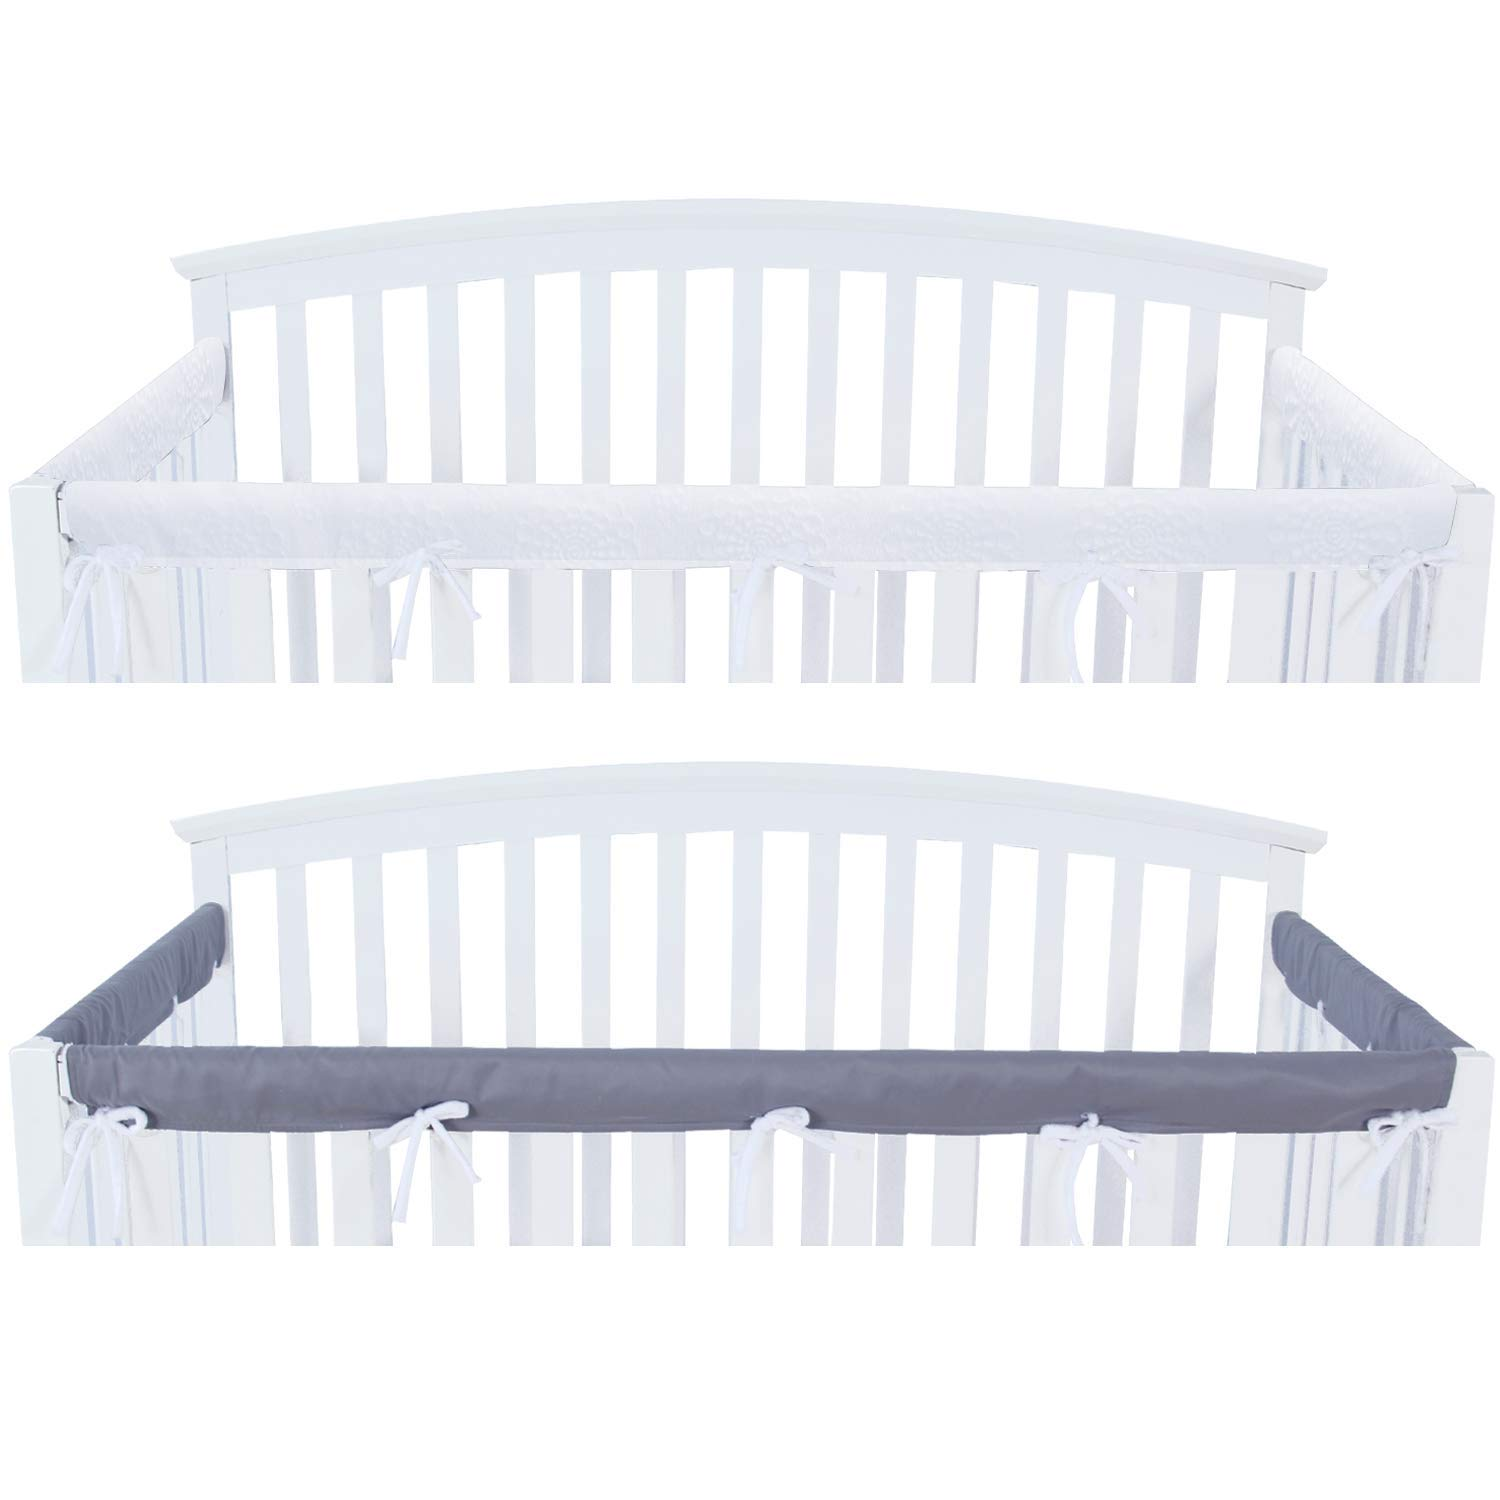 3 - Piece Crib Rail Cover Protector Safe Teething Guard Wrap for Standard Crib Rails, Fit Side and Front Rails, Grey/White, Reversible, Safe and Secure Crib Rail Cover. 61iAzeYK92BL